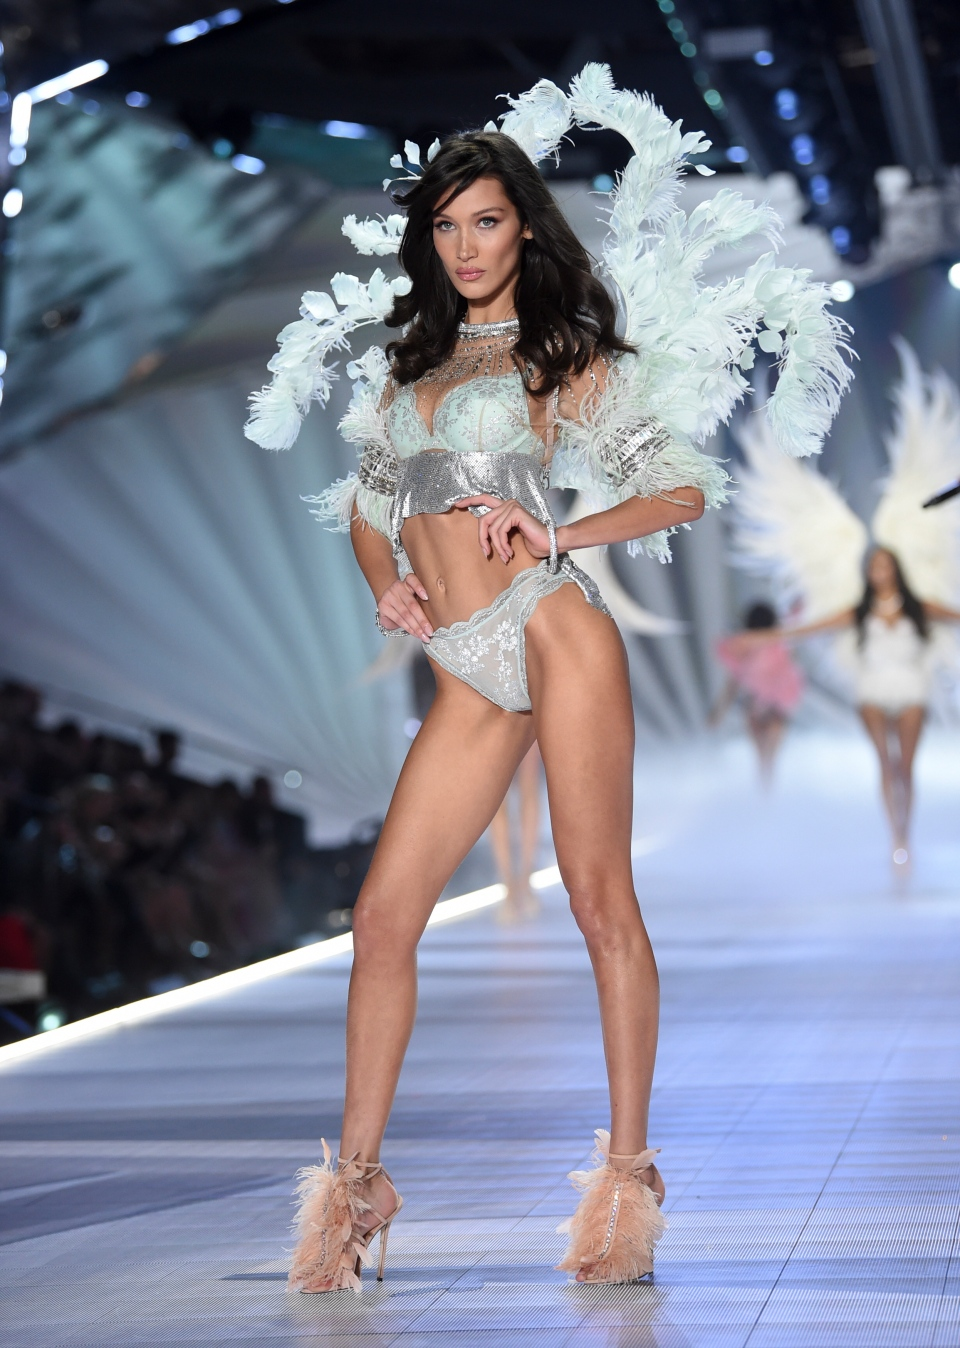 Model Bella Hadid walks the runway during the 2018 Victoria's Secret Fashion Show at Pier 94 on Thursday, Nov. 8, 2018, in New York. (Photo by Evan Agostini/Invision/AP)